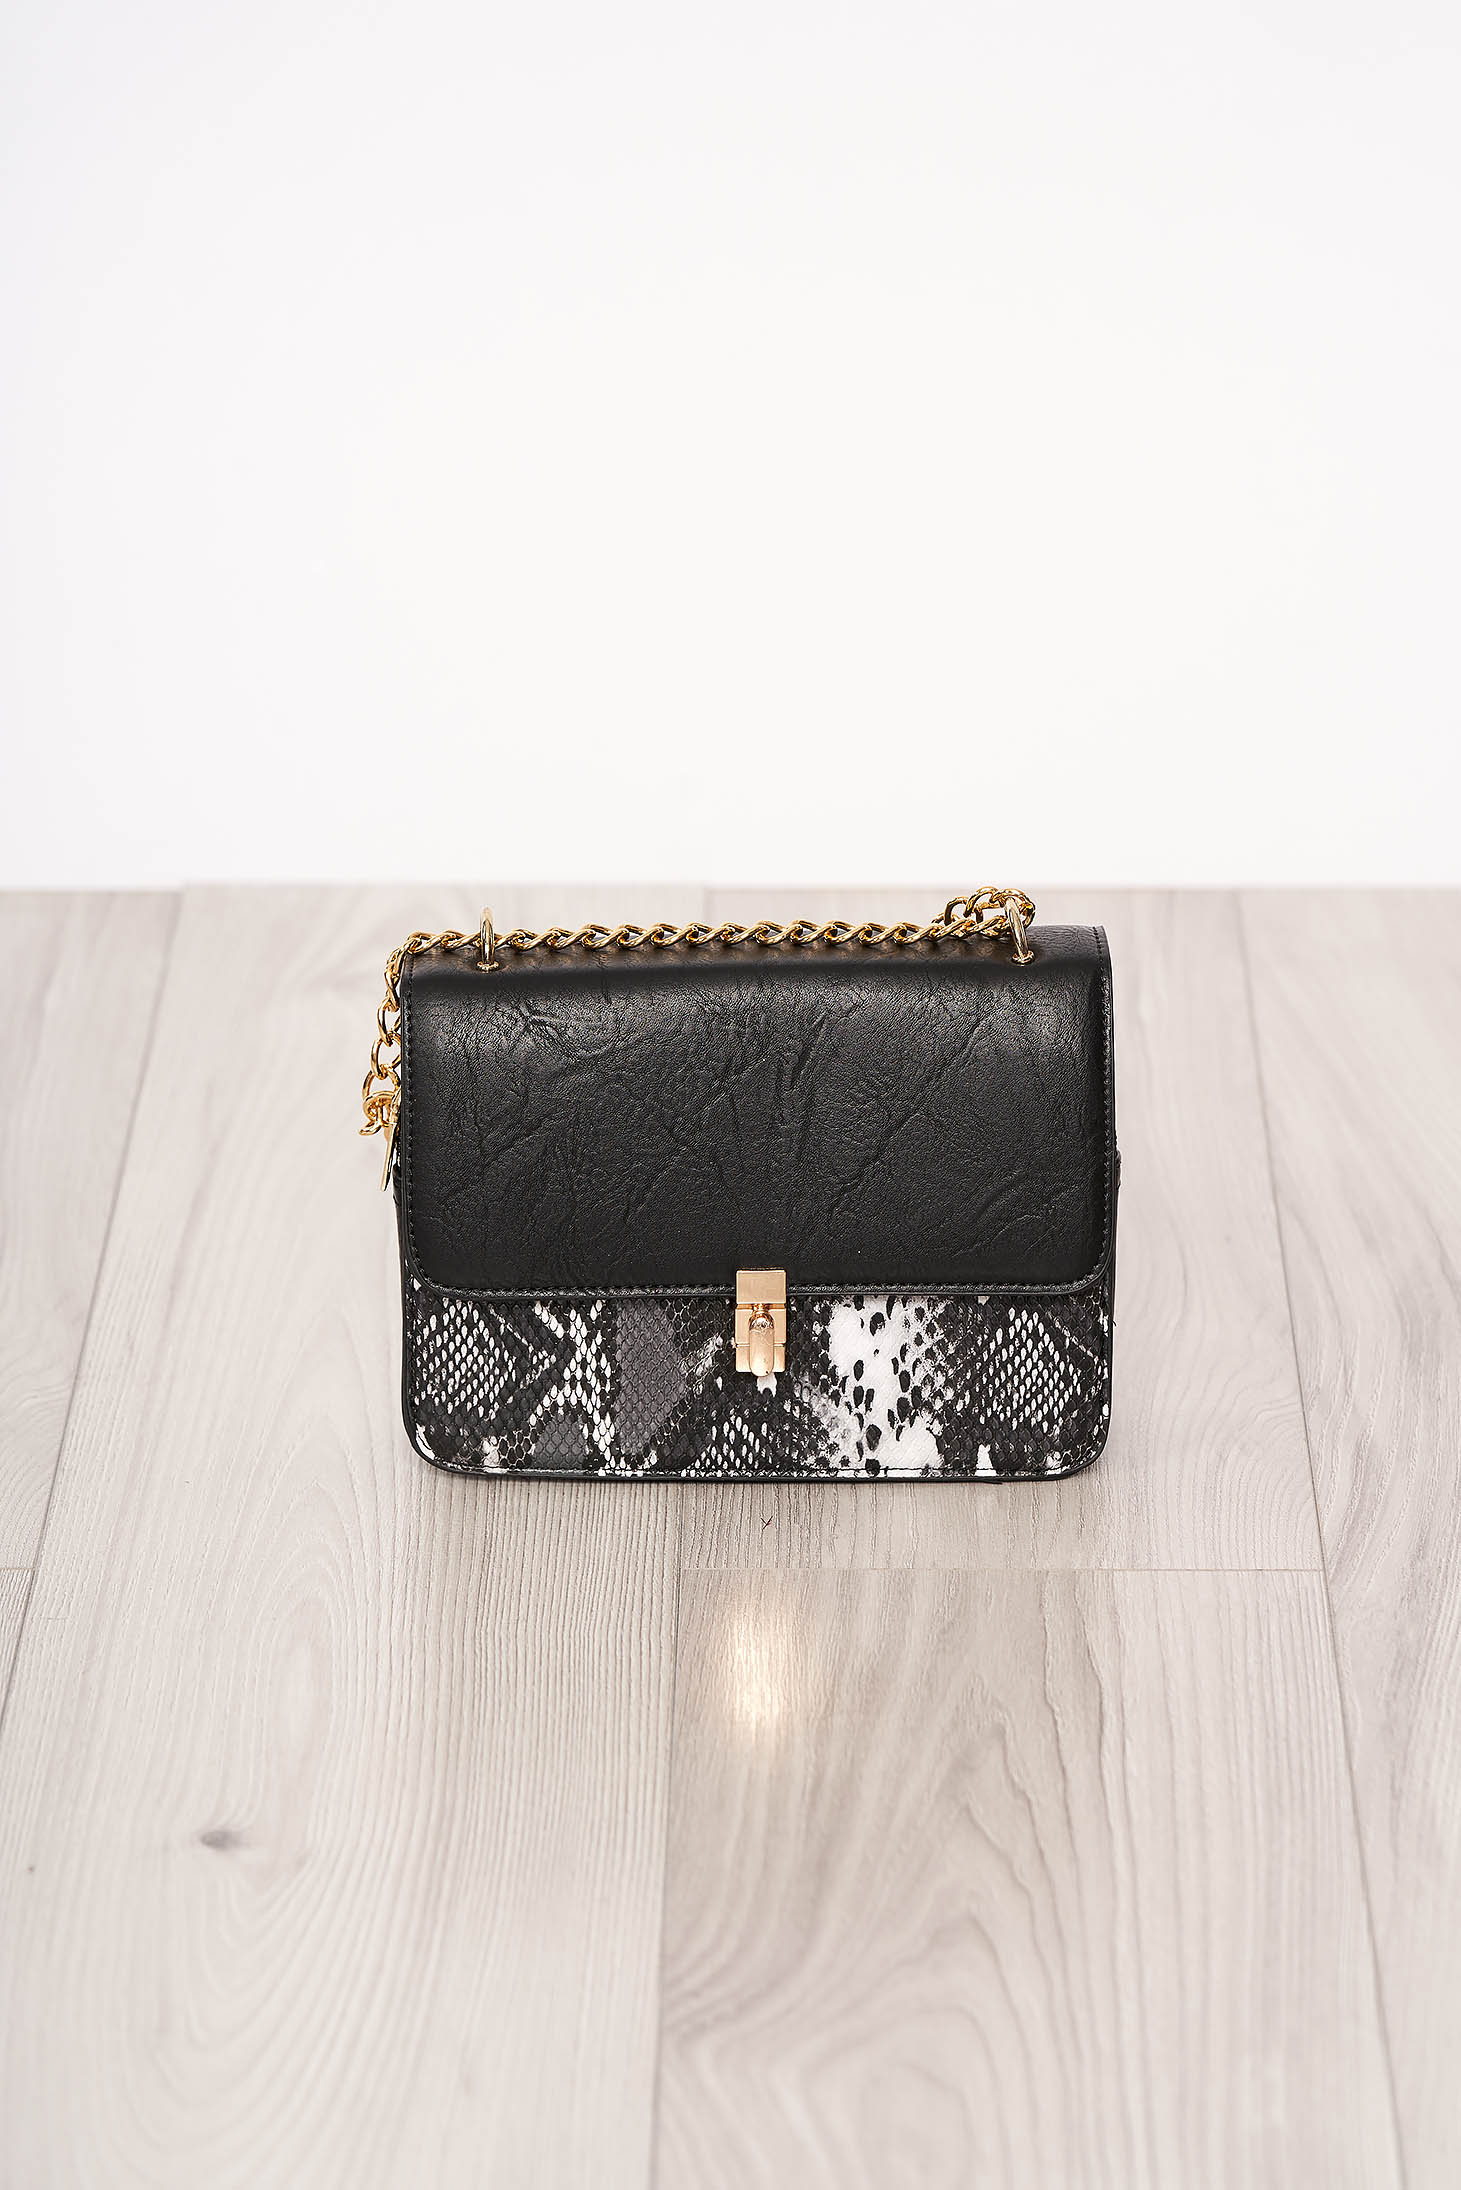 Bag black with animal print long chain handle buckle accessory ecological leather